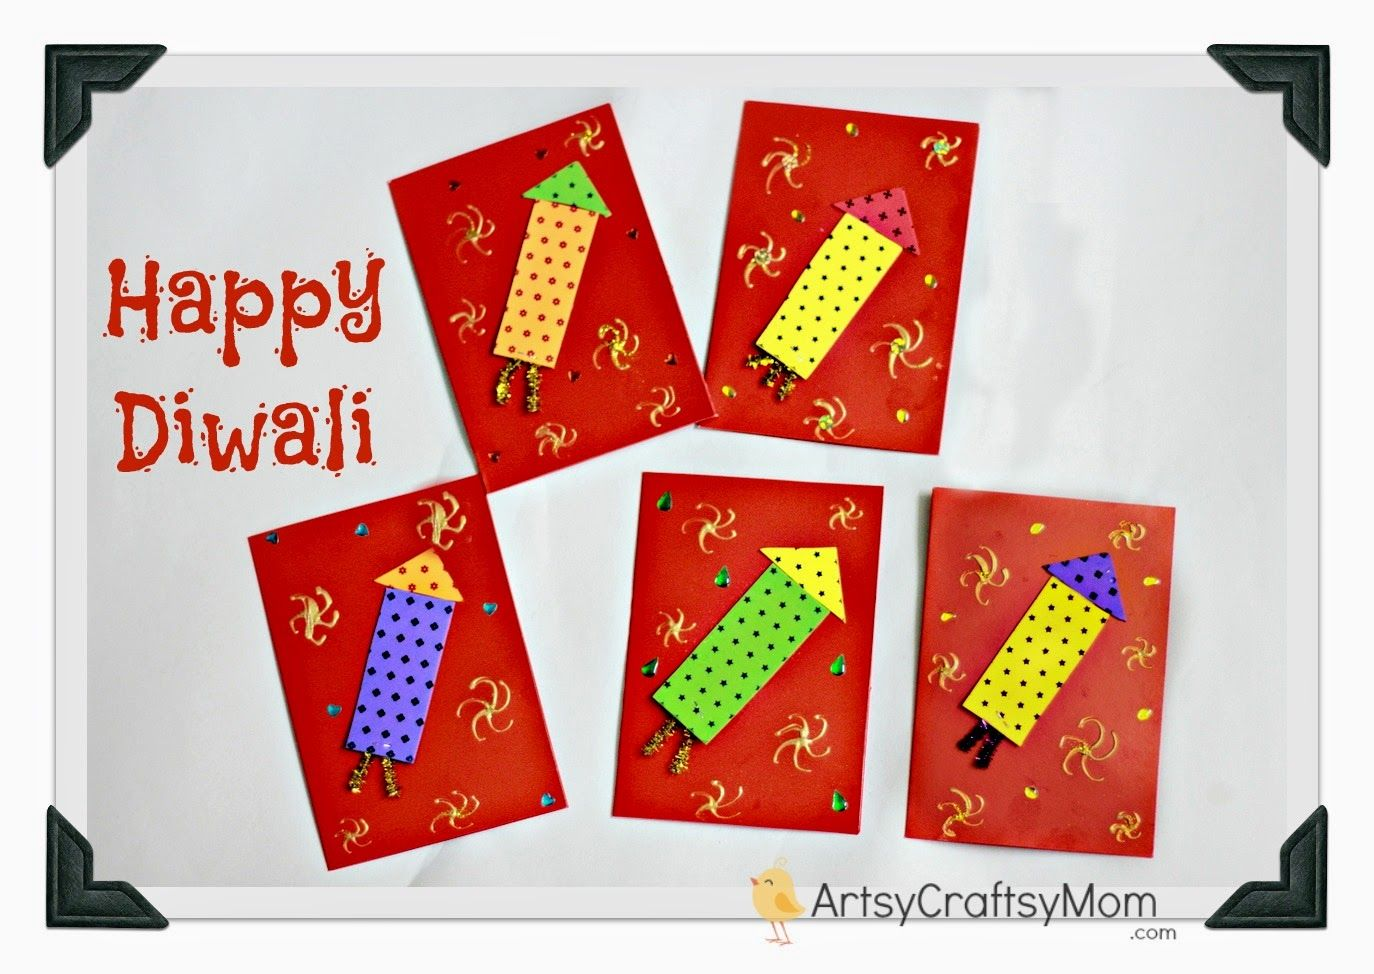 Firecracker themed diwali greeting card for kids happy diwali happy diwali foam cards diwali kidscraft handmadecard kristyandbryce Choice Image